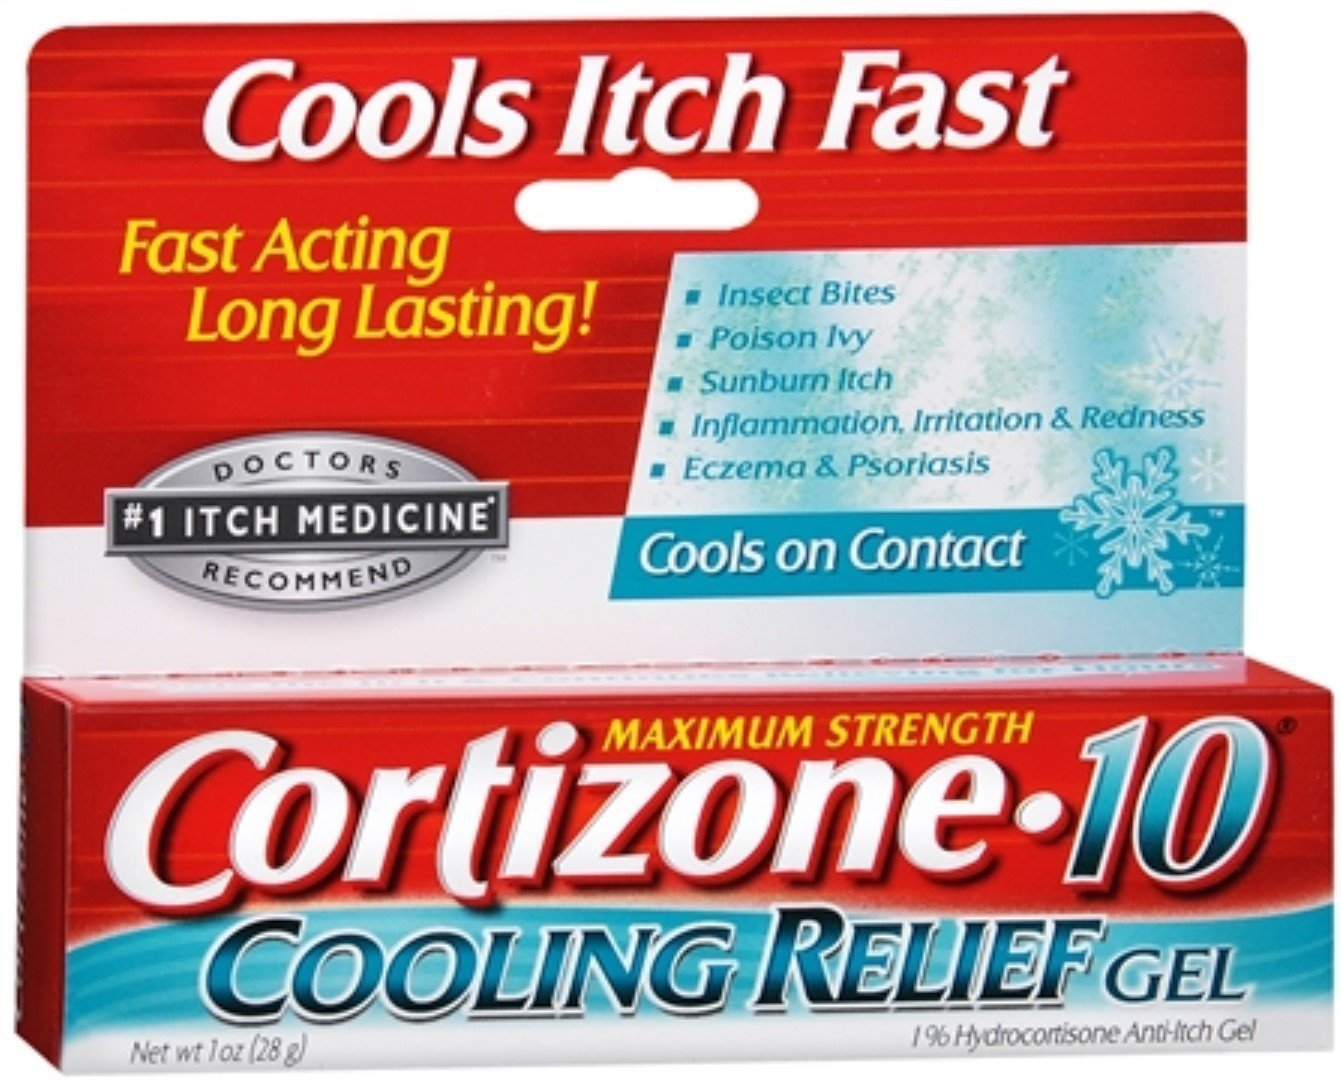 Cortizone-10 Cooling Relief Anti-Itch Gel 1 oz (Pack of 5) by Cortizone 10